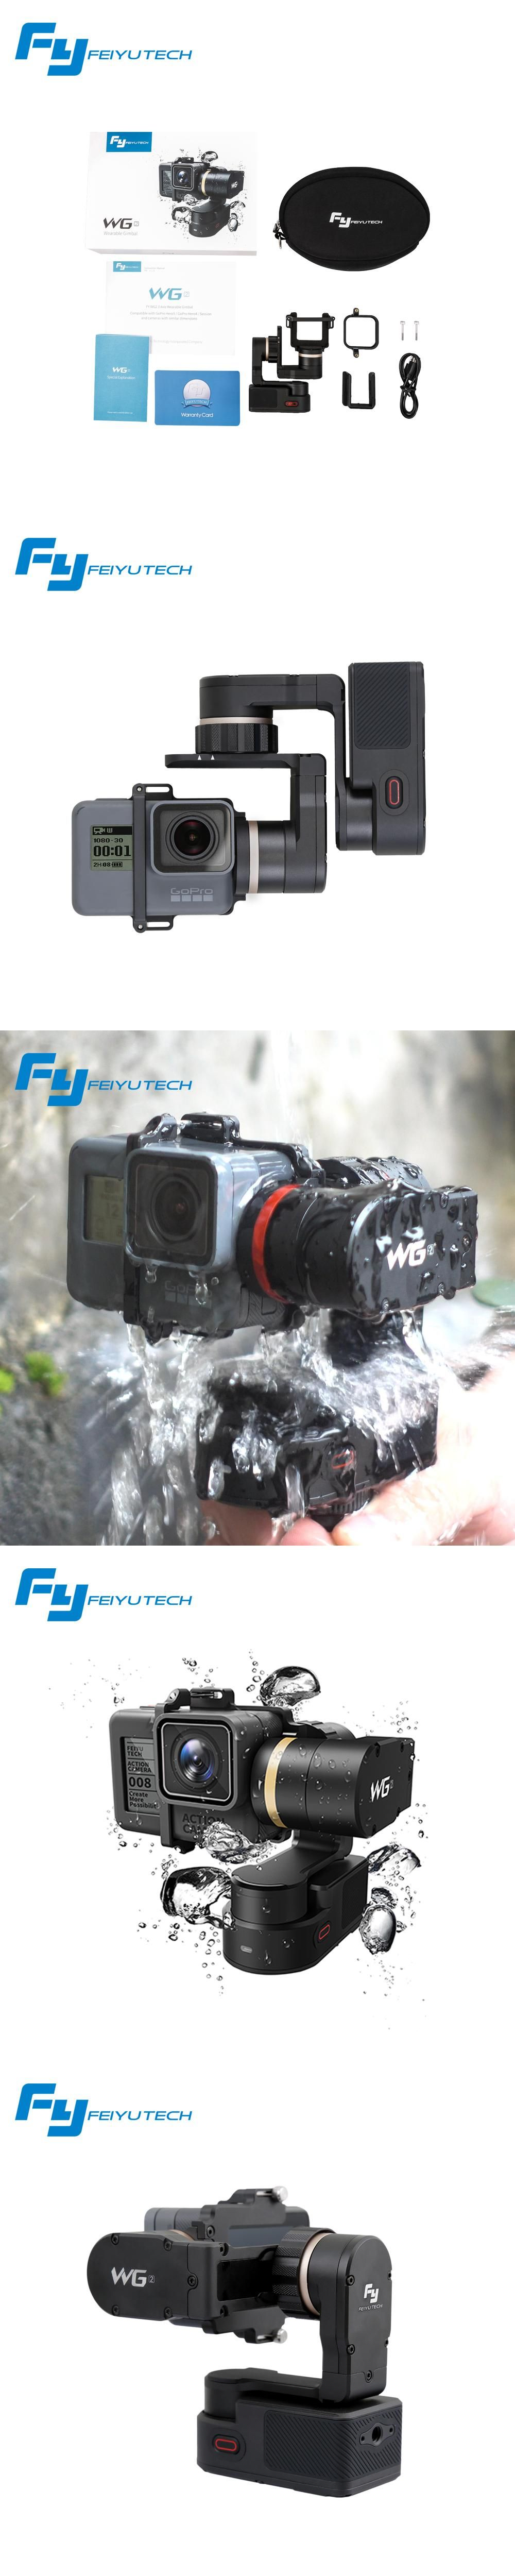 Feiyutech Newest Wg2 Wearable 3 Axis Waterproof Gimbal Stabilizer Gopro Hero Acc Remote 20 For 4 5 Session Yi 4k Sjcam Aee Action Camera Hot